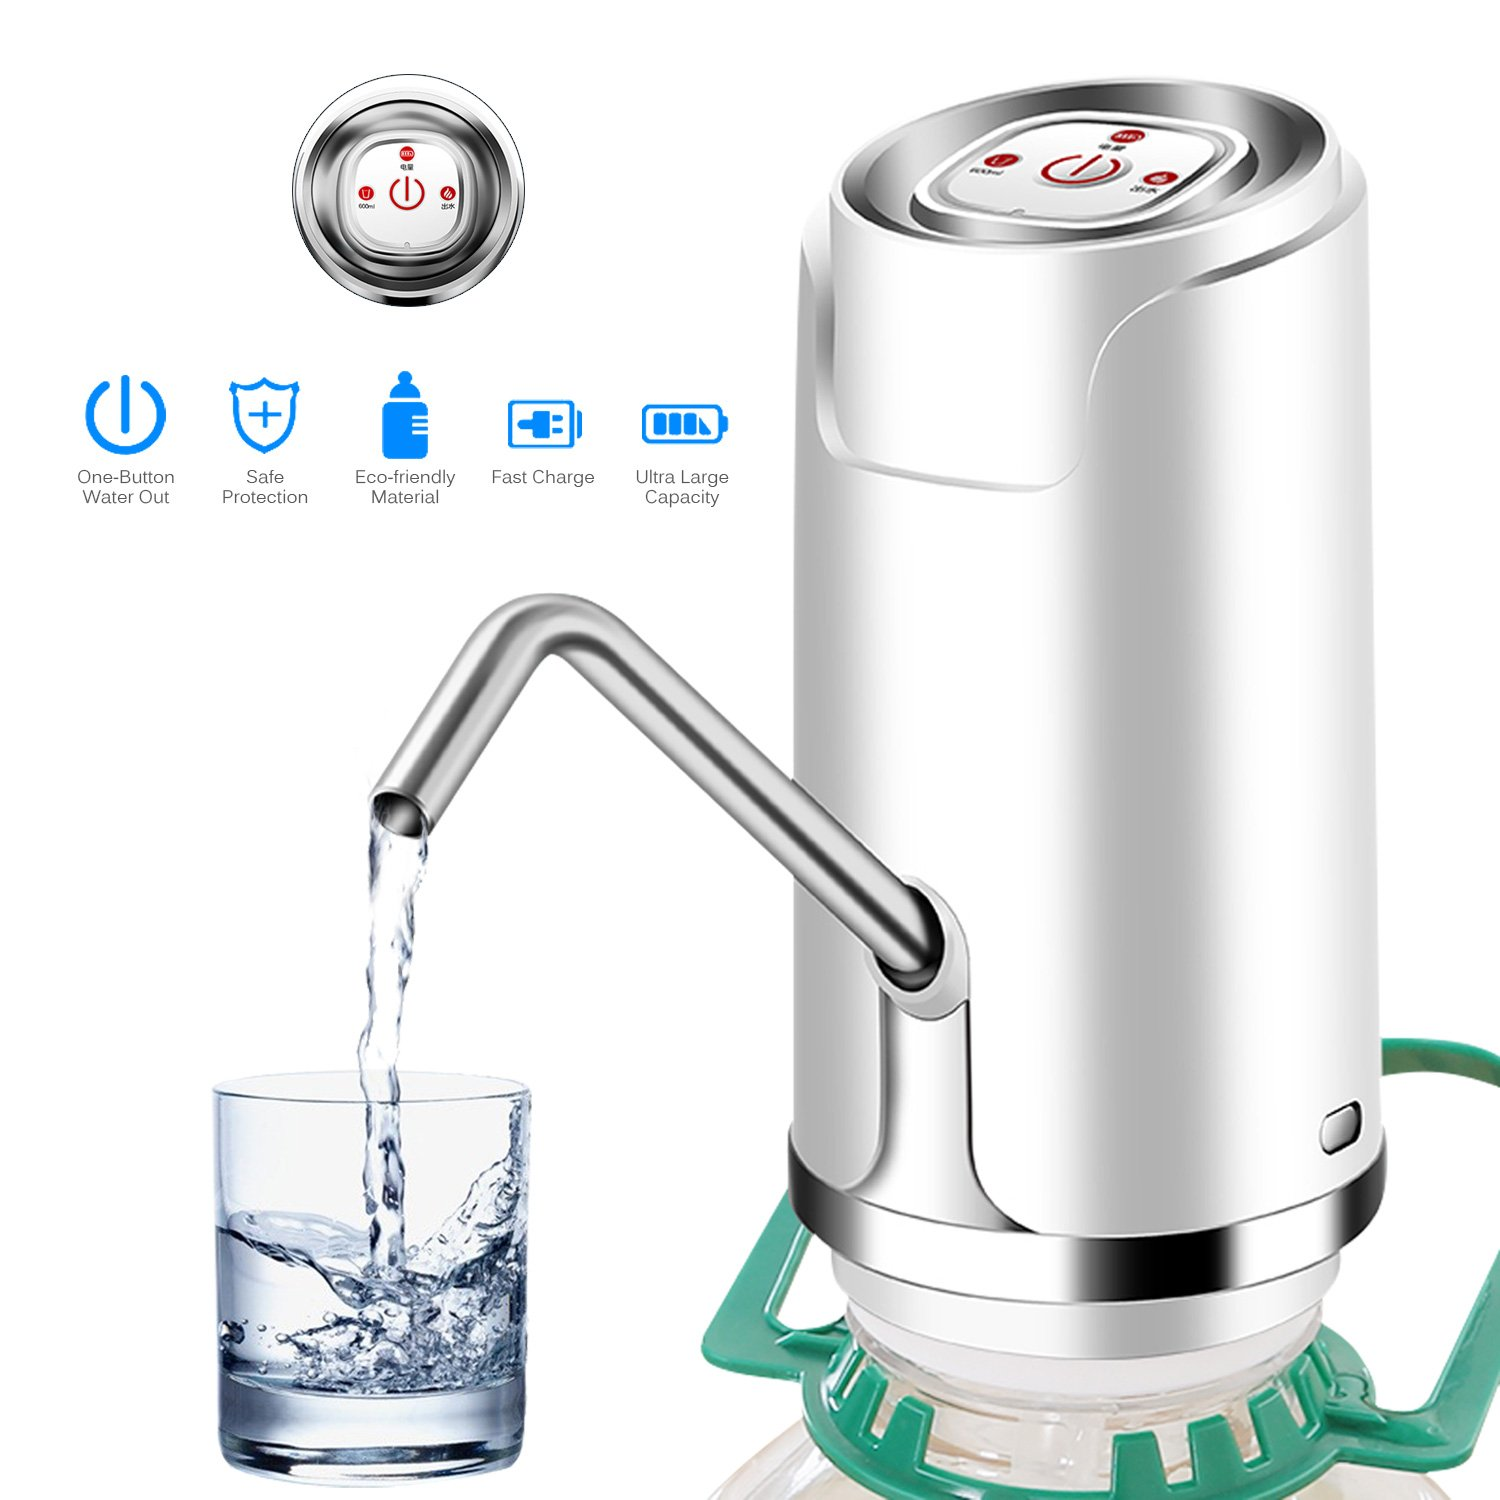 Drinking Water Pump, ONEVER Wireless Automatic Electric Drinking Bottle Water Dispensing Pump System with 5W USB Charging, Portable Press Pump Bottled Water Supply Device For Home and Office (White)